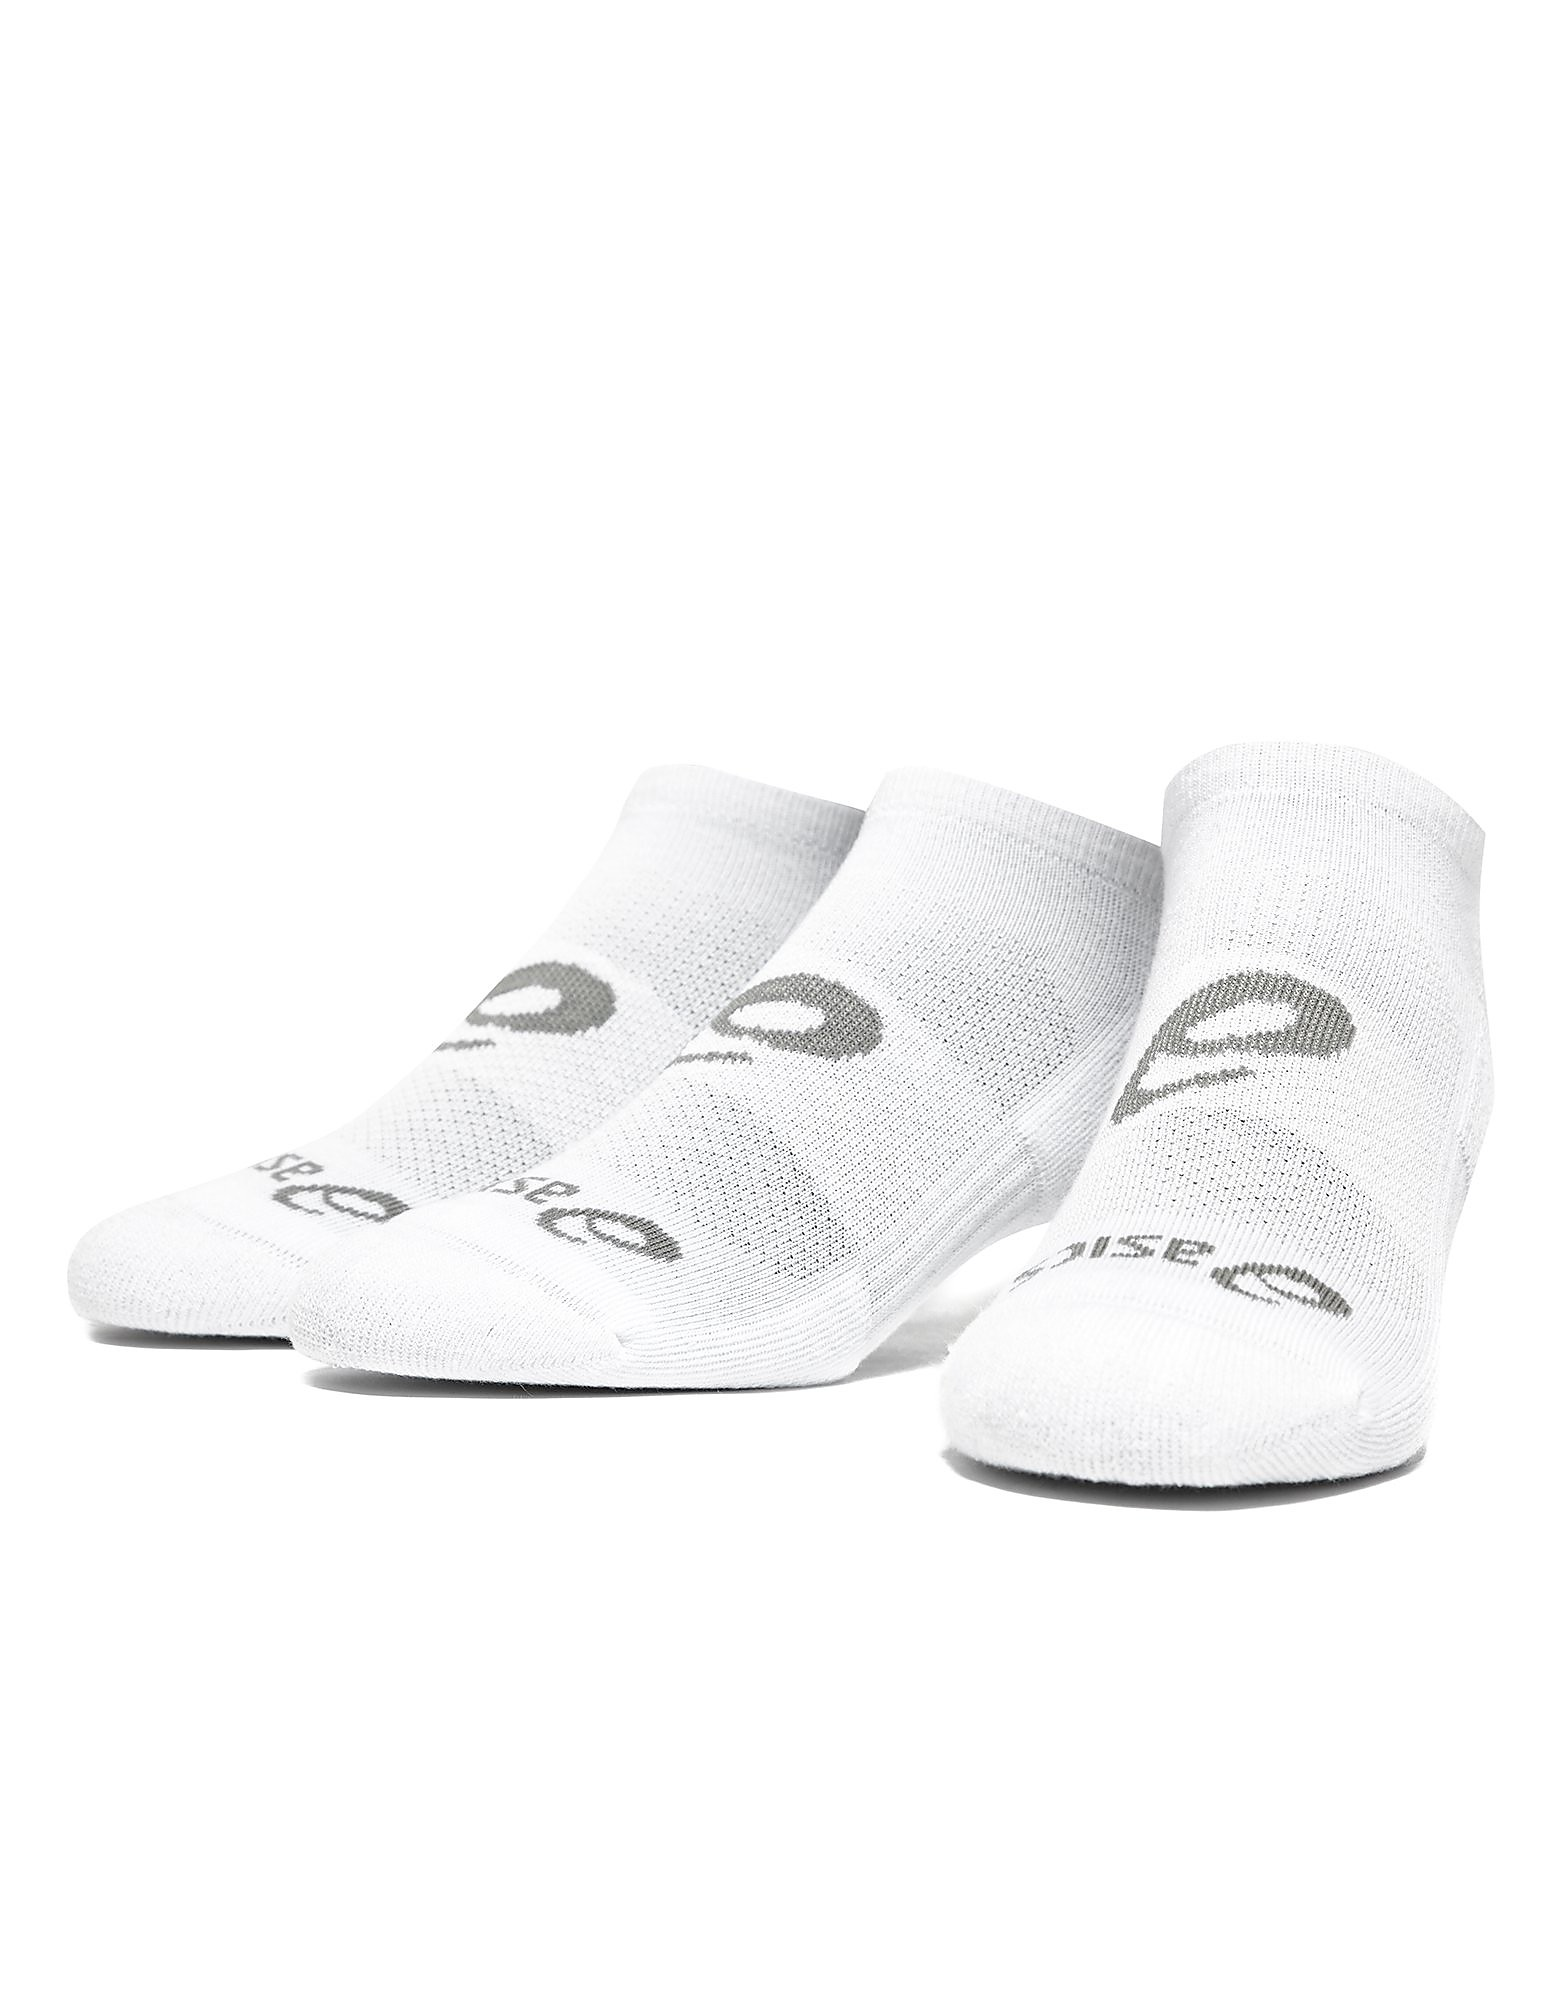 ASICS Invisible (6 Pack) Socks